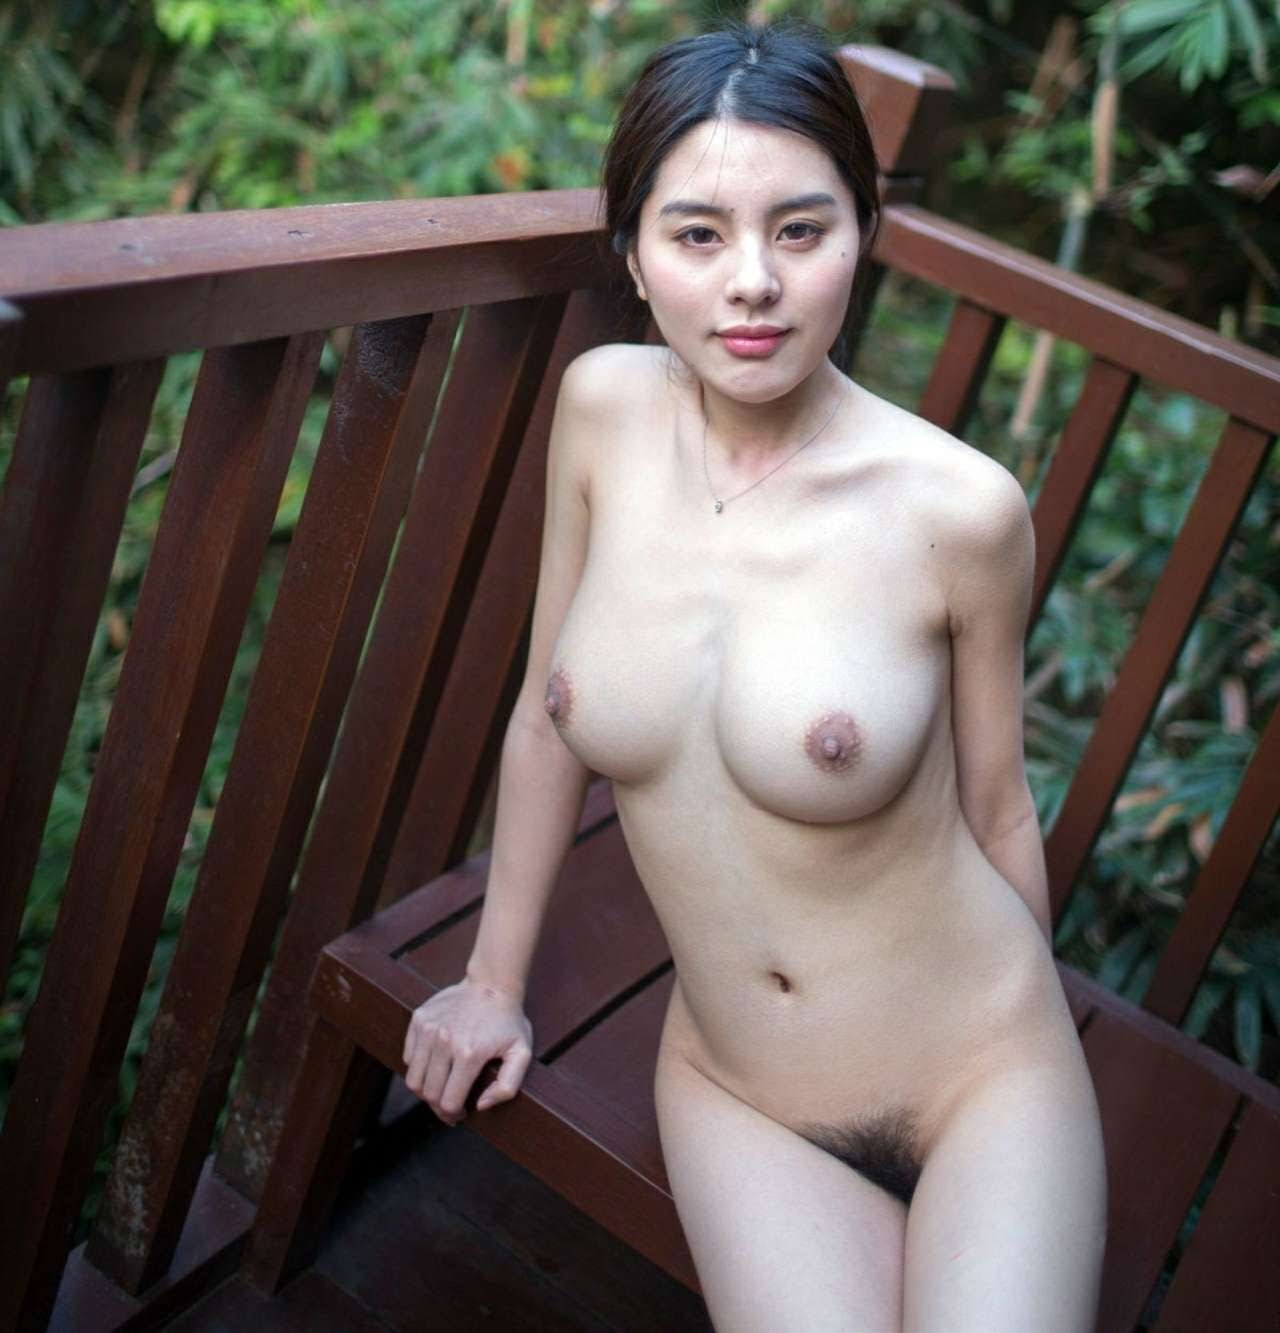 Real women dressed undressed